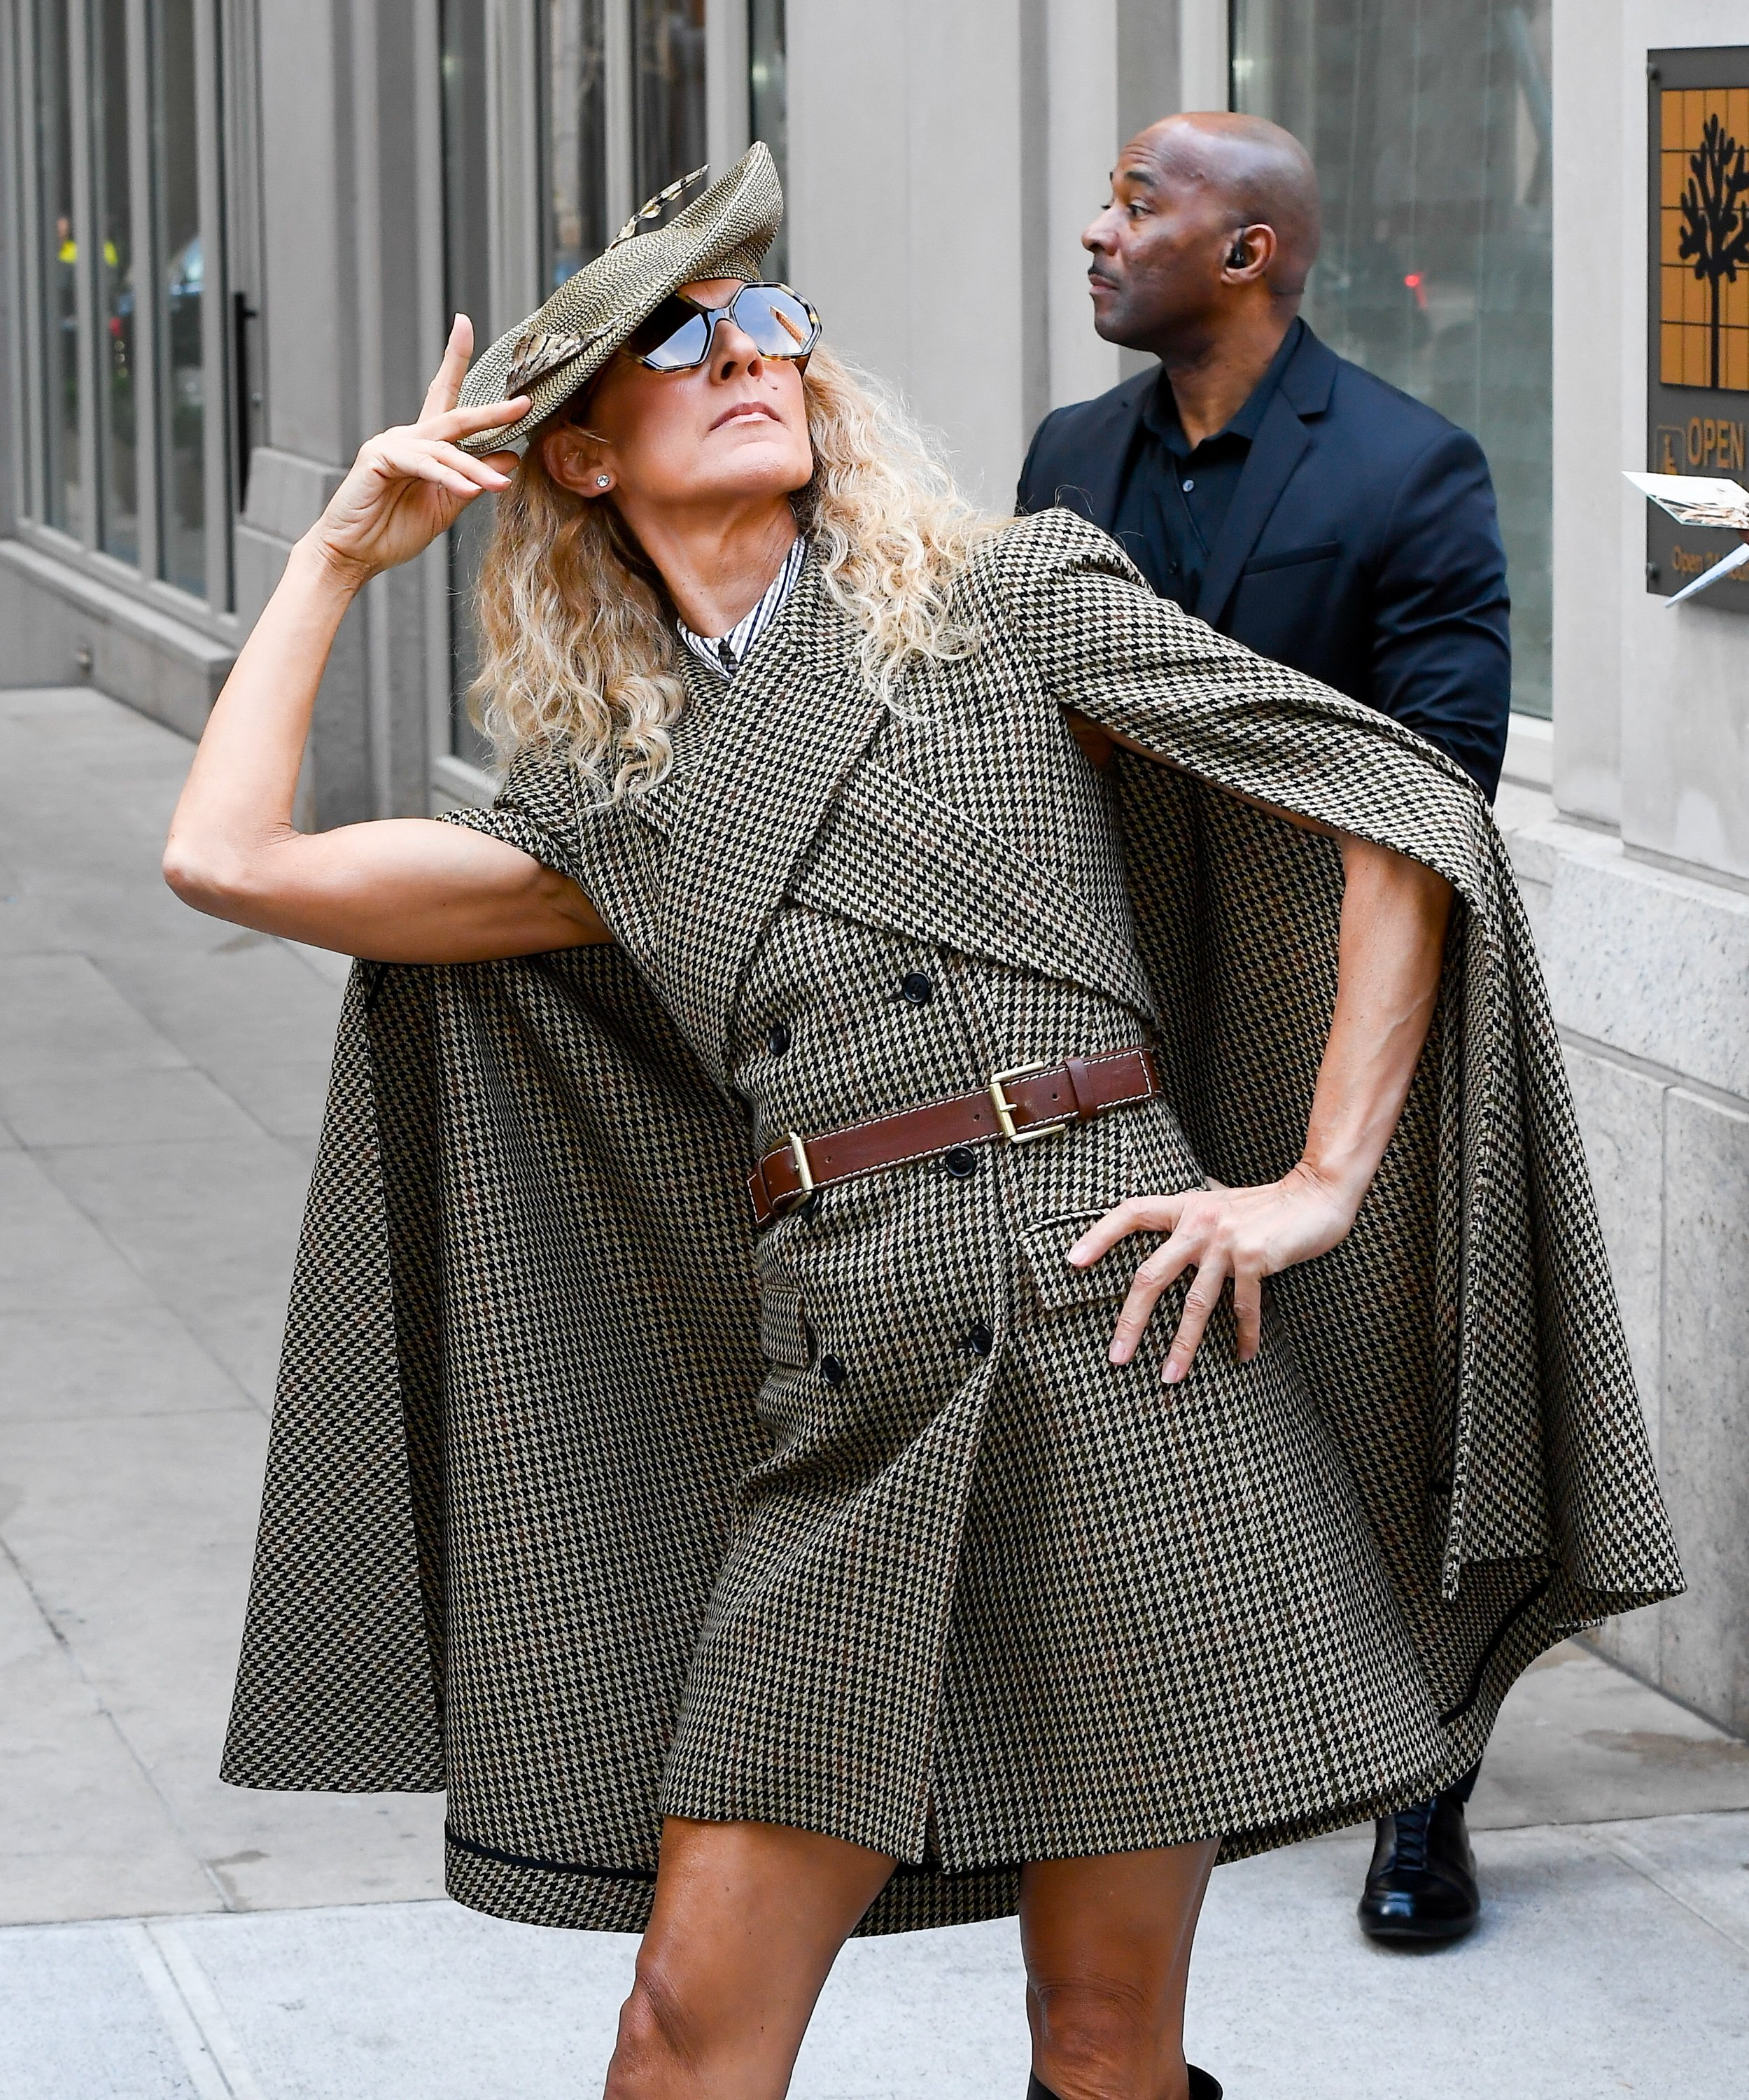 Celine Dion posed for photos on the street in Soho on March 5, 2020 in New York City. | Source: Getty Images